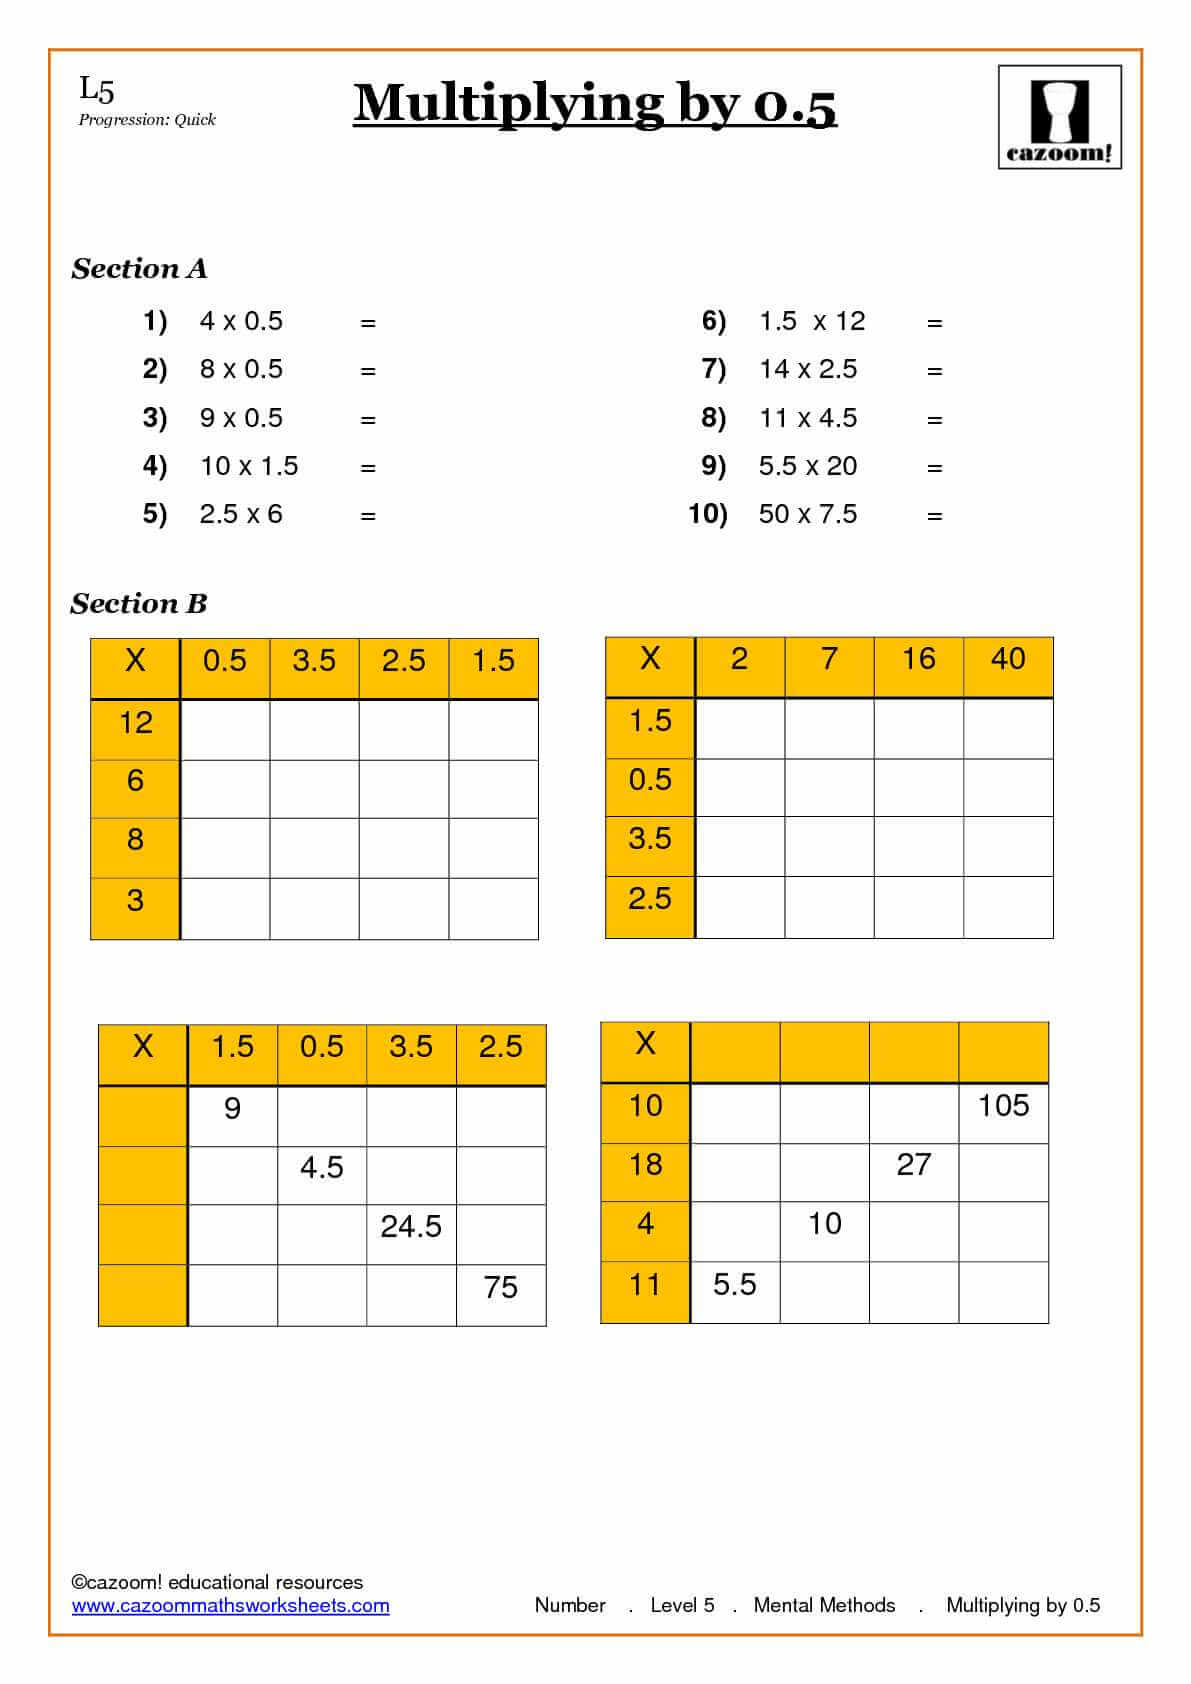 Upsr Maths Worksheets - The Best and Most Comprehensive ...